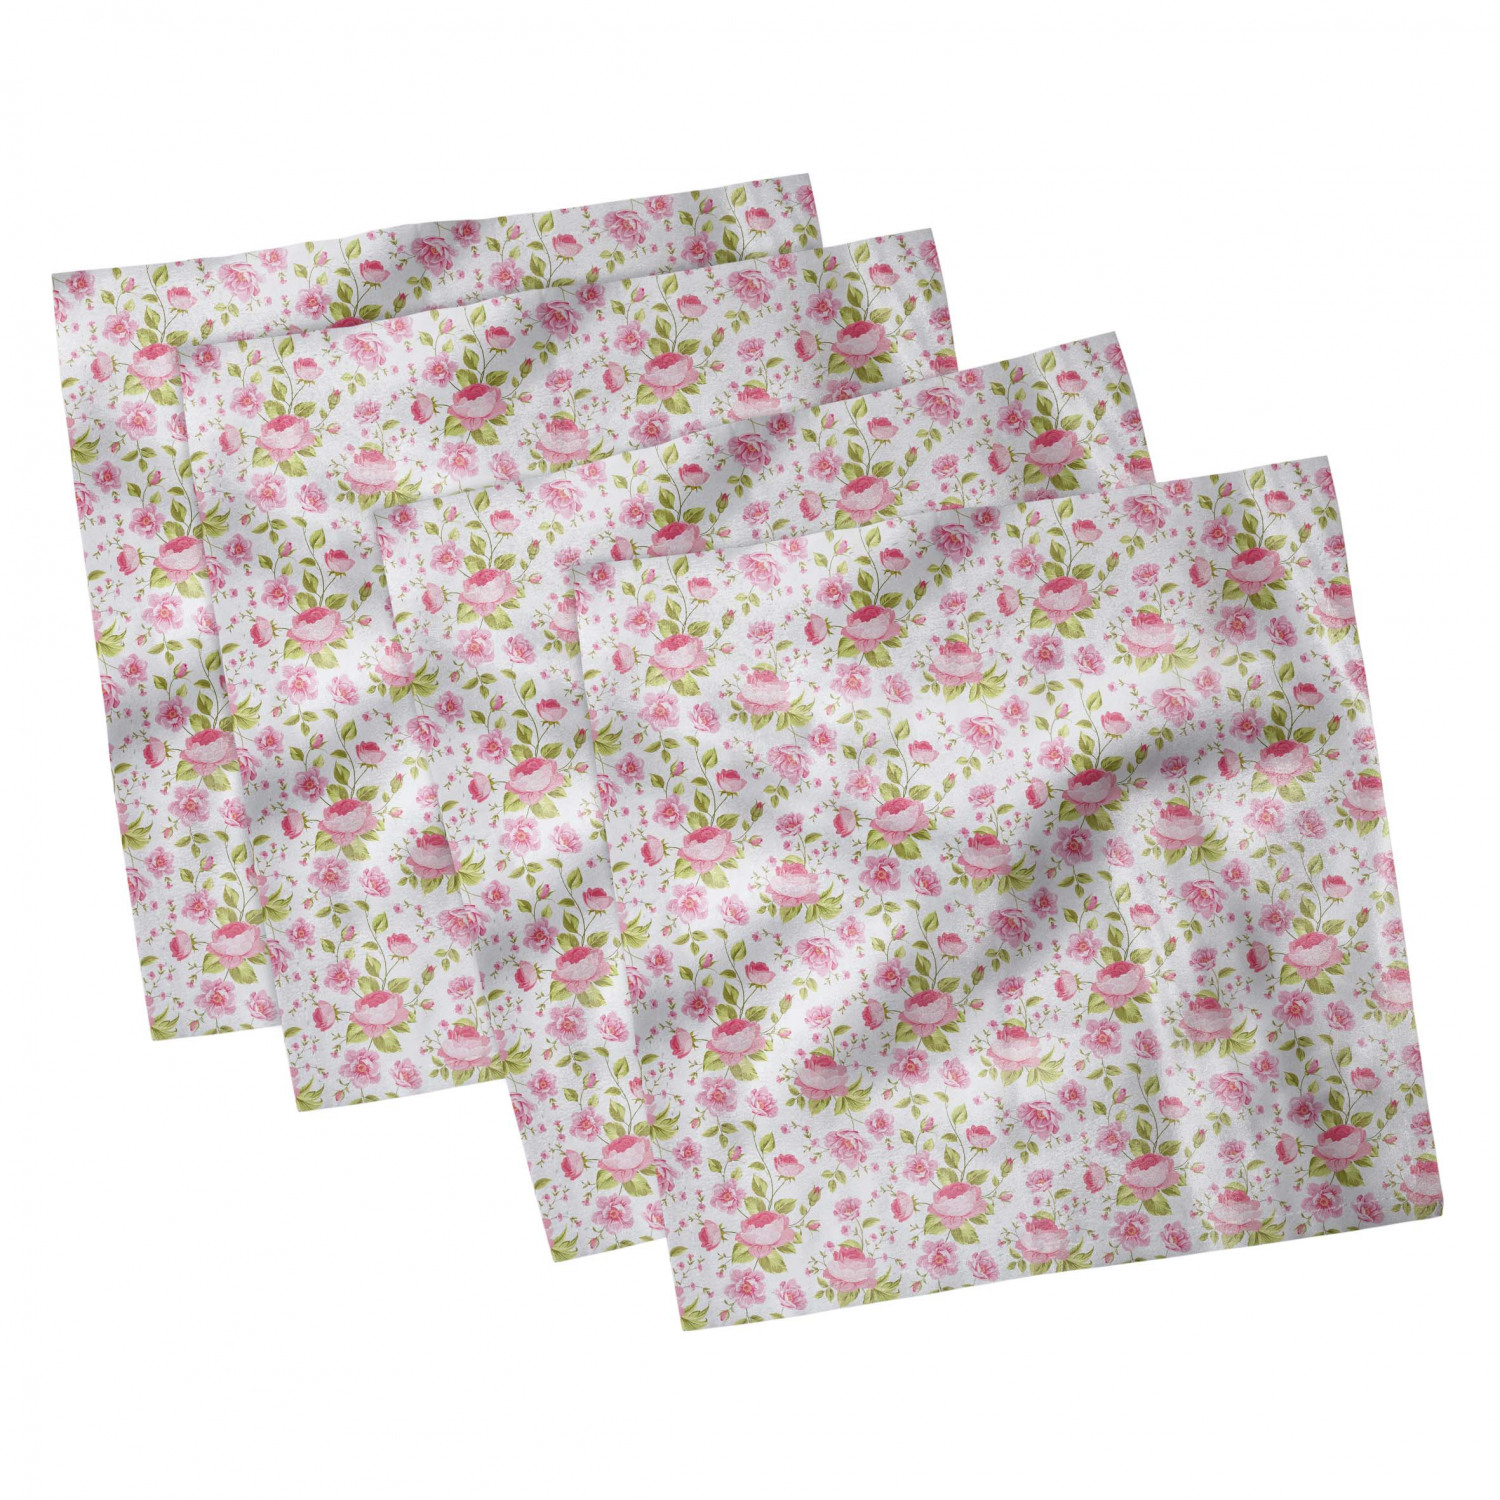 thumbnail 119 - Ambesonne-Leaves-Forest-Decorative-Satin-Napkins-Set-of-4-Party-Dinner-Fabric